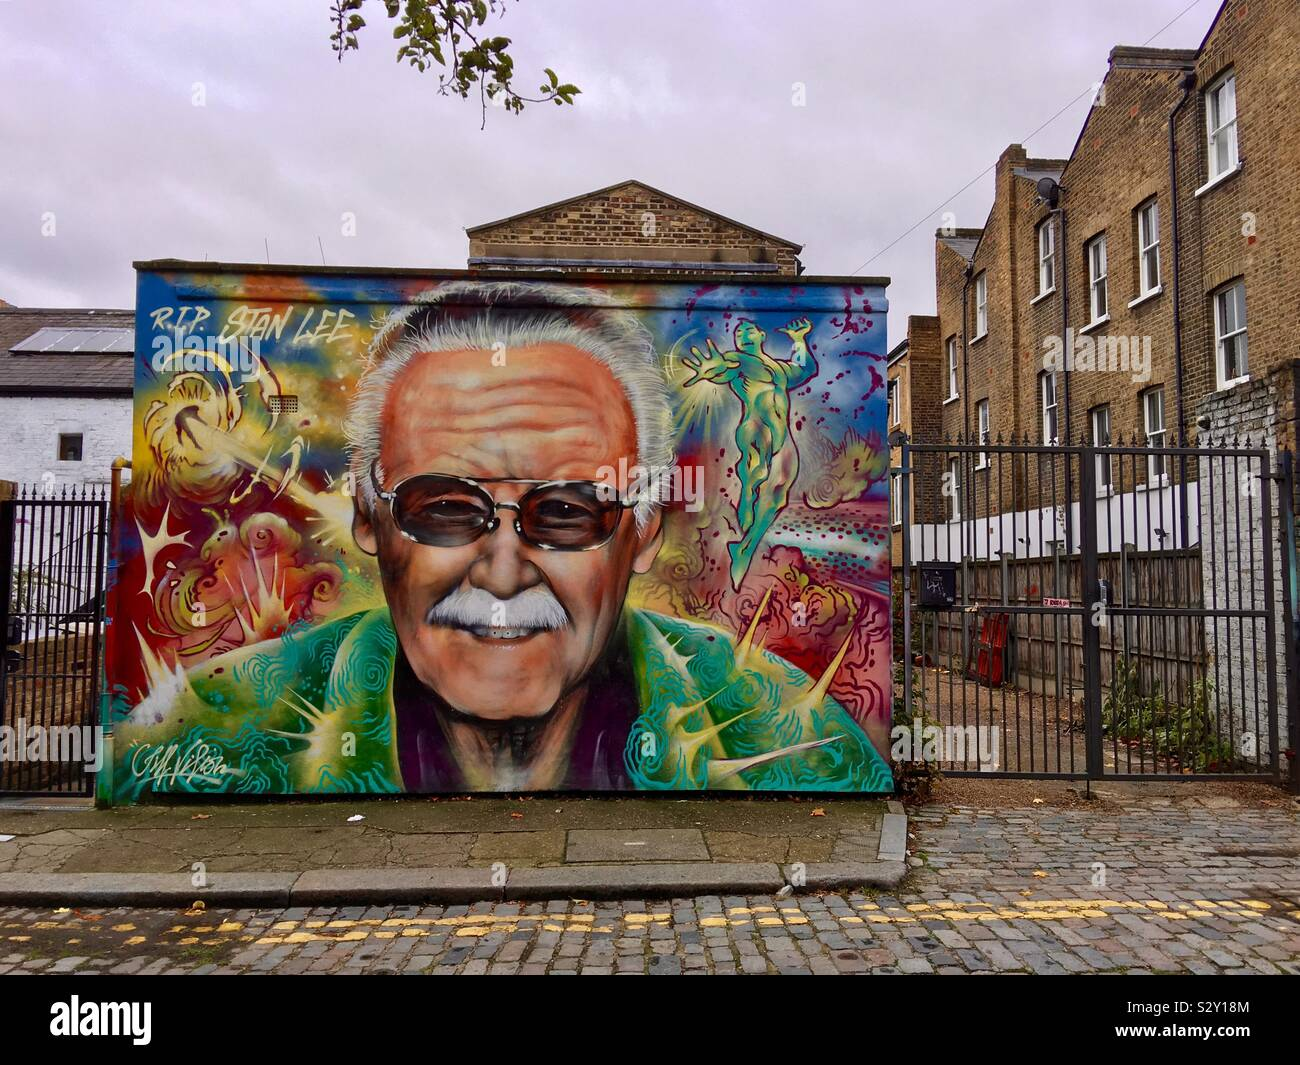 rest-in-peace-stan-lee-street-art-mural-